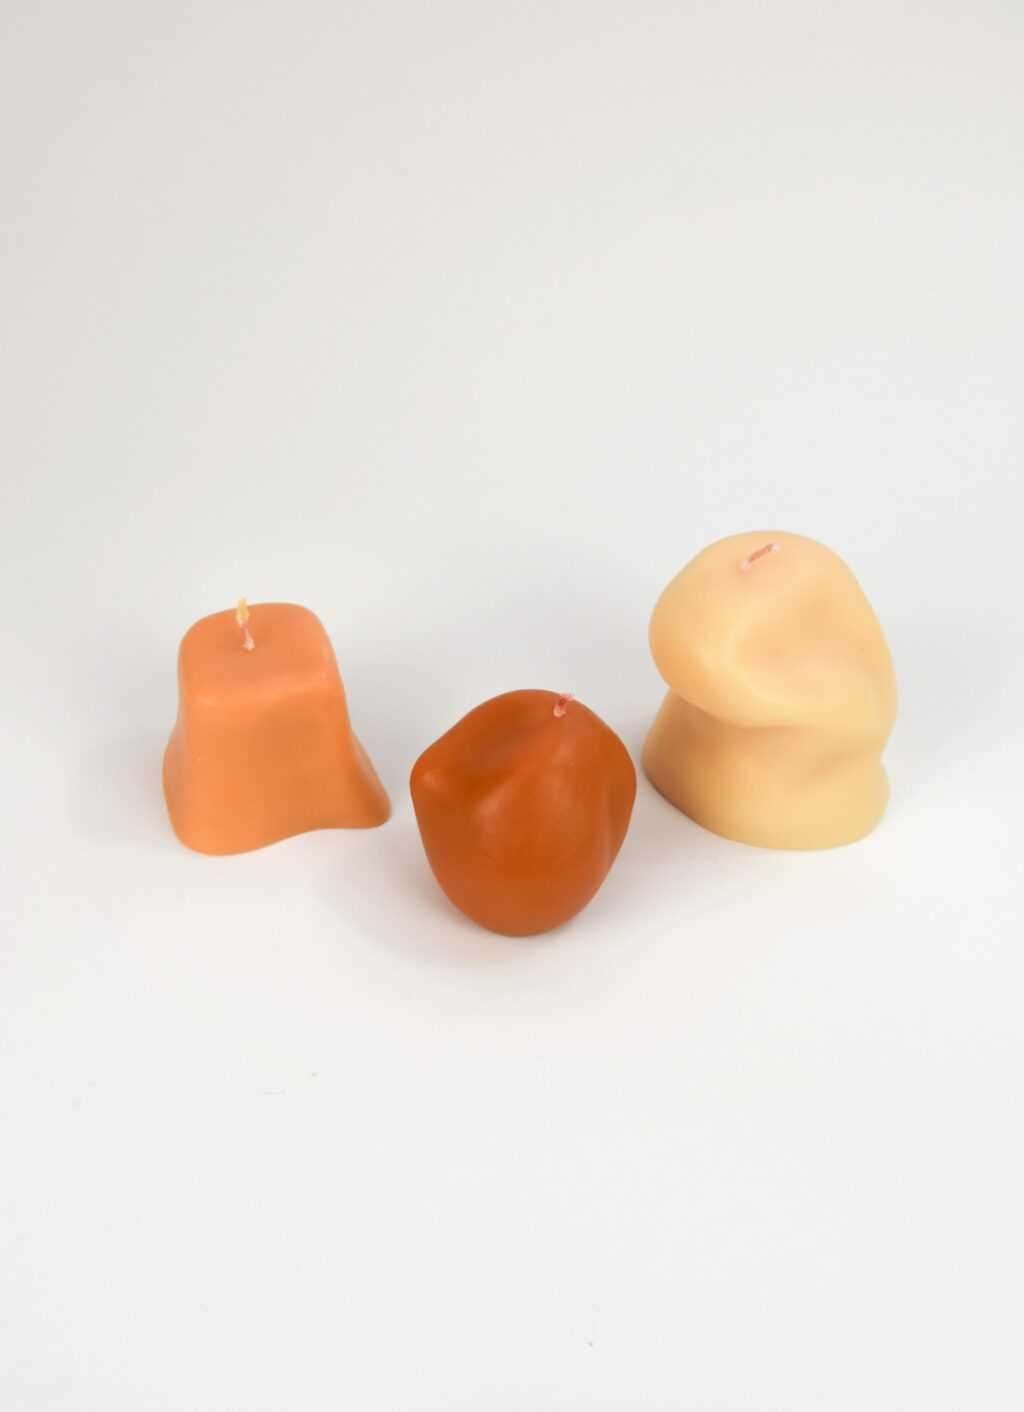 Ann Vincent Studio - Sole Candles - Set of three hand poured soy-wax candles